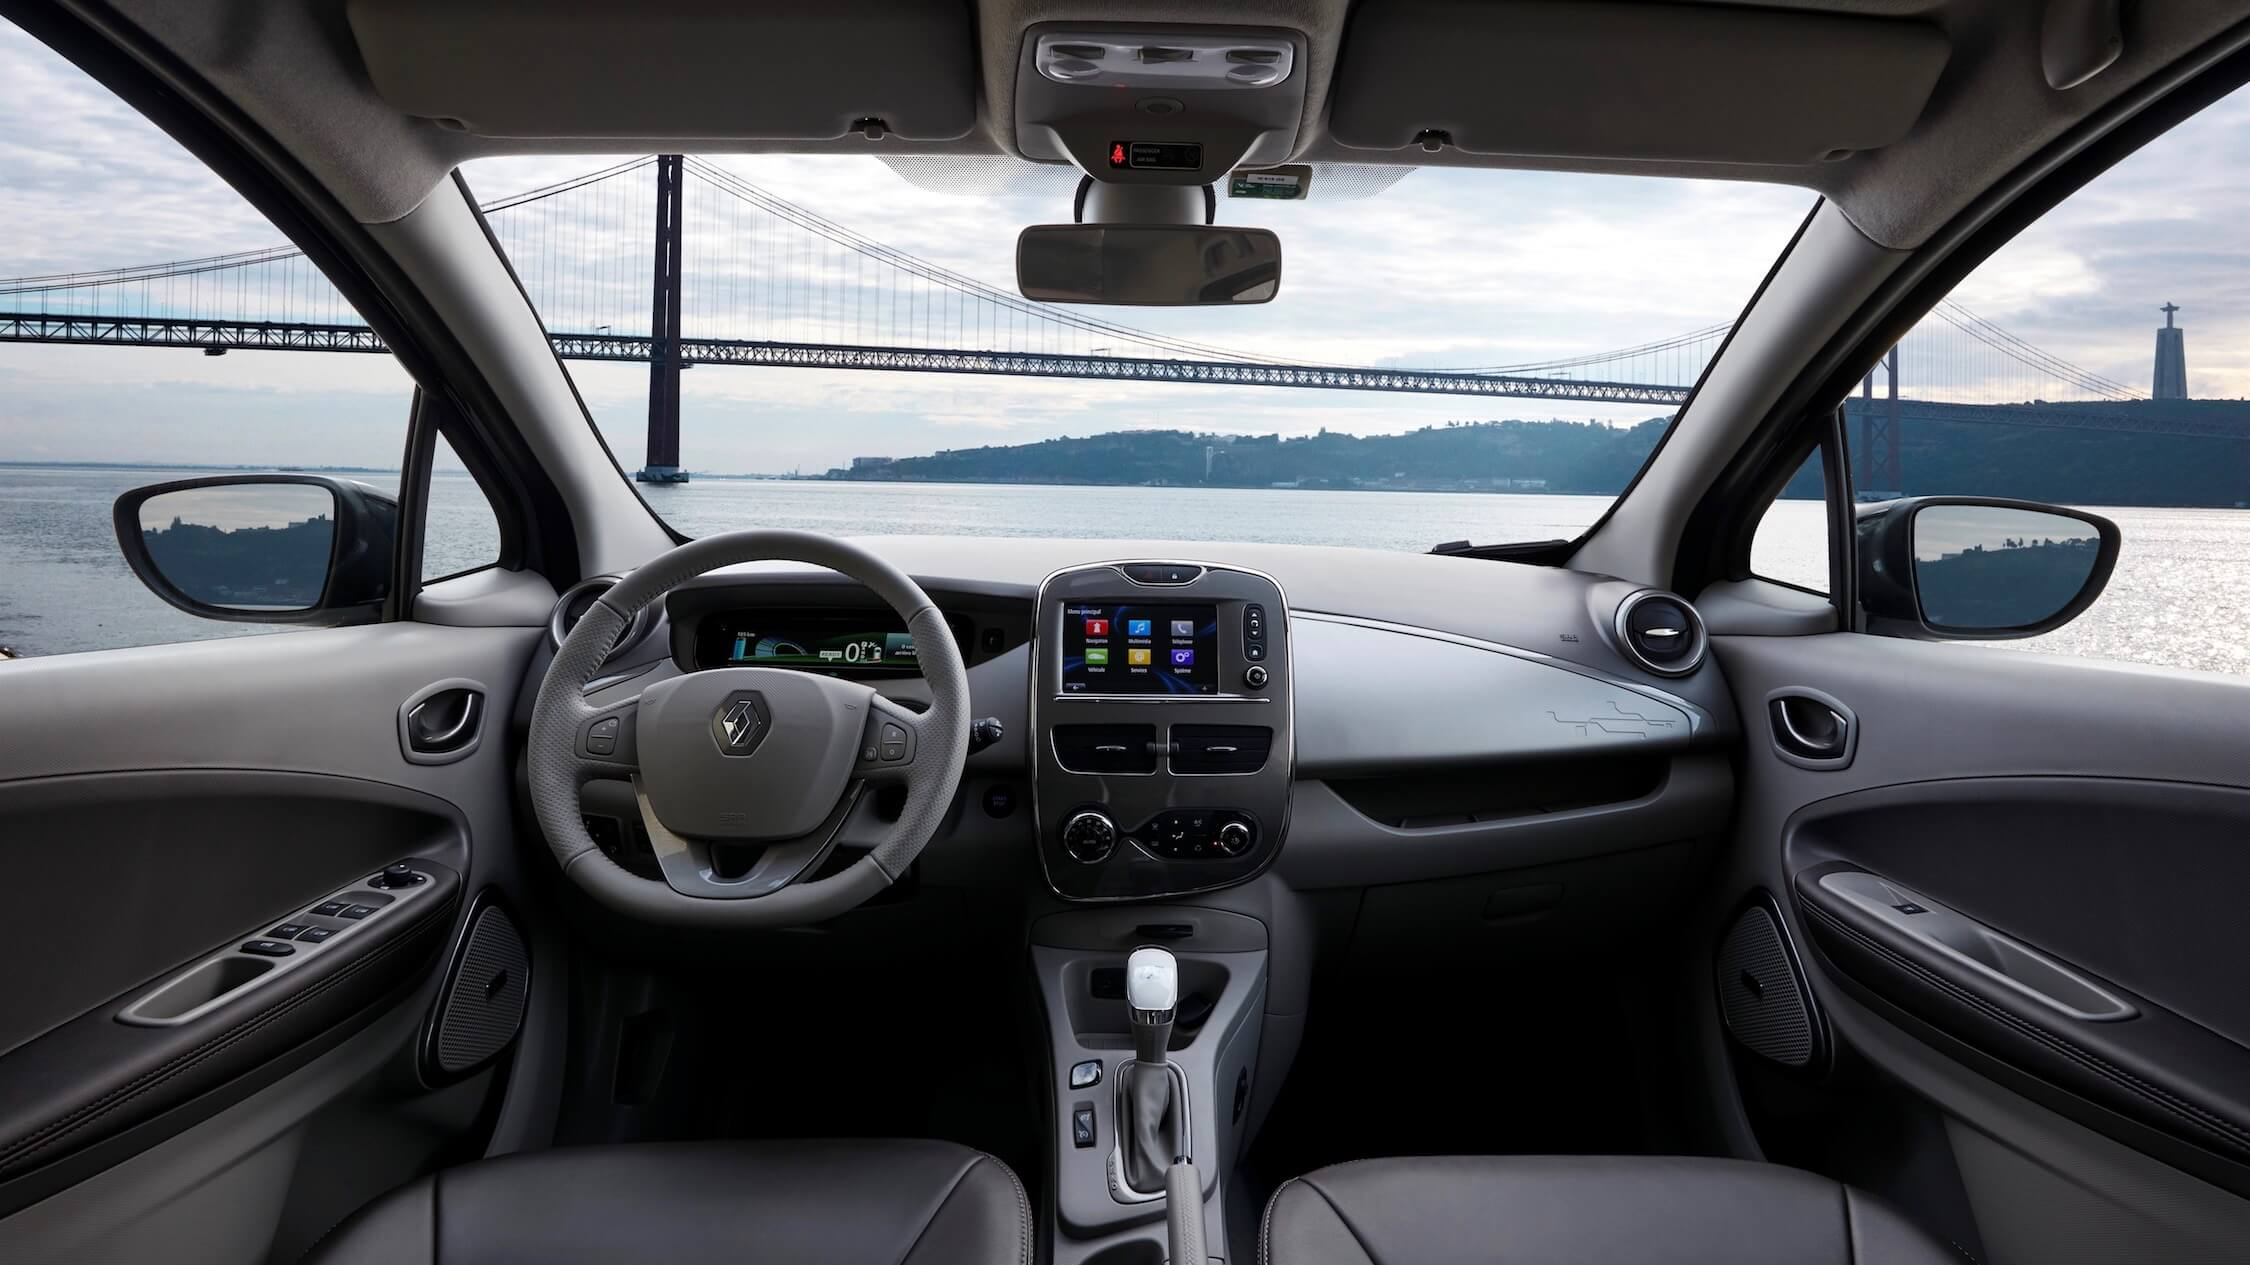 Renault Zoe interieur dashboard